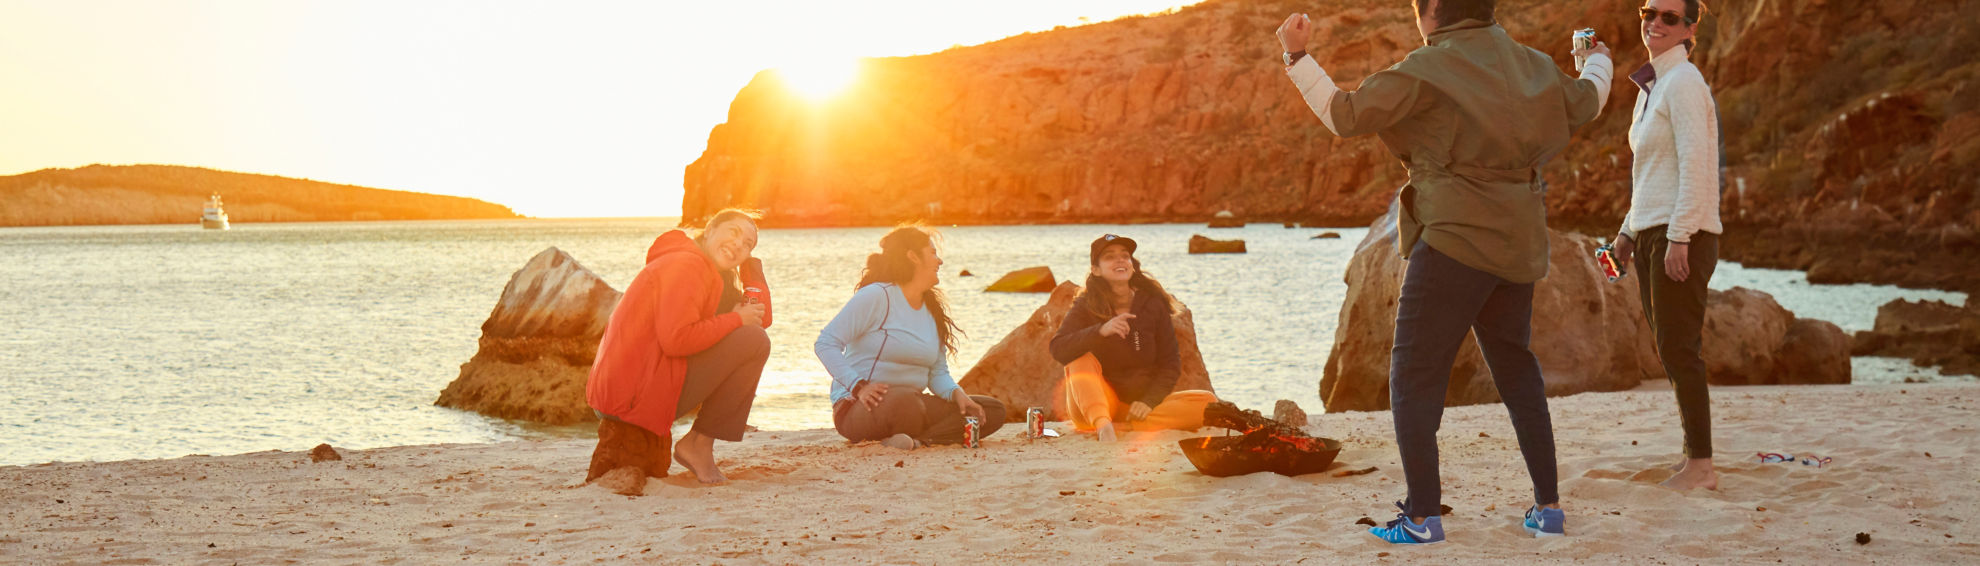 a group of women enjoying the sunset and lively conversation on a beach